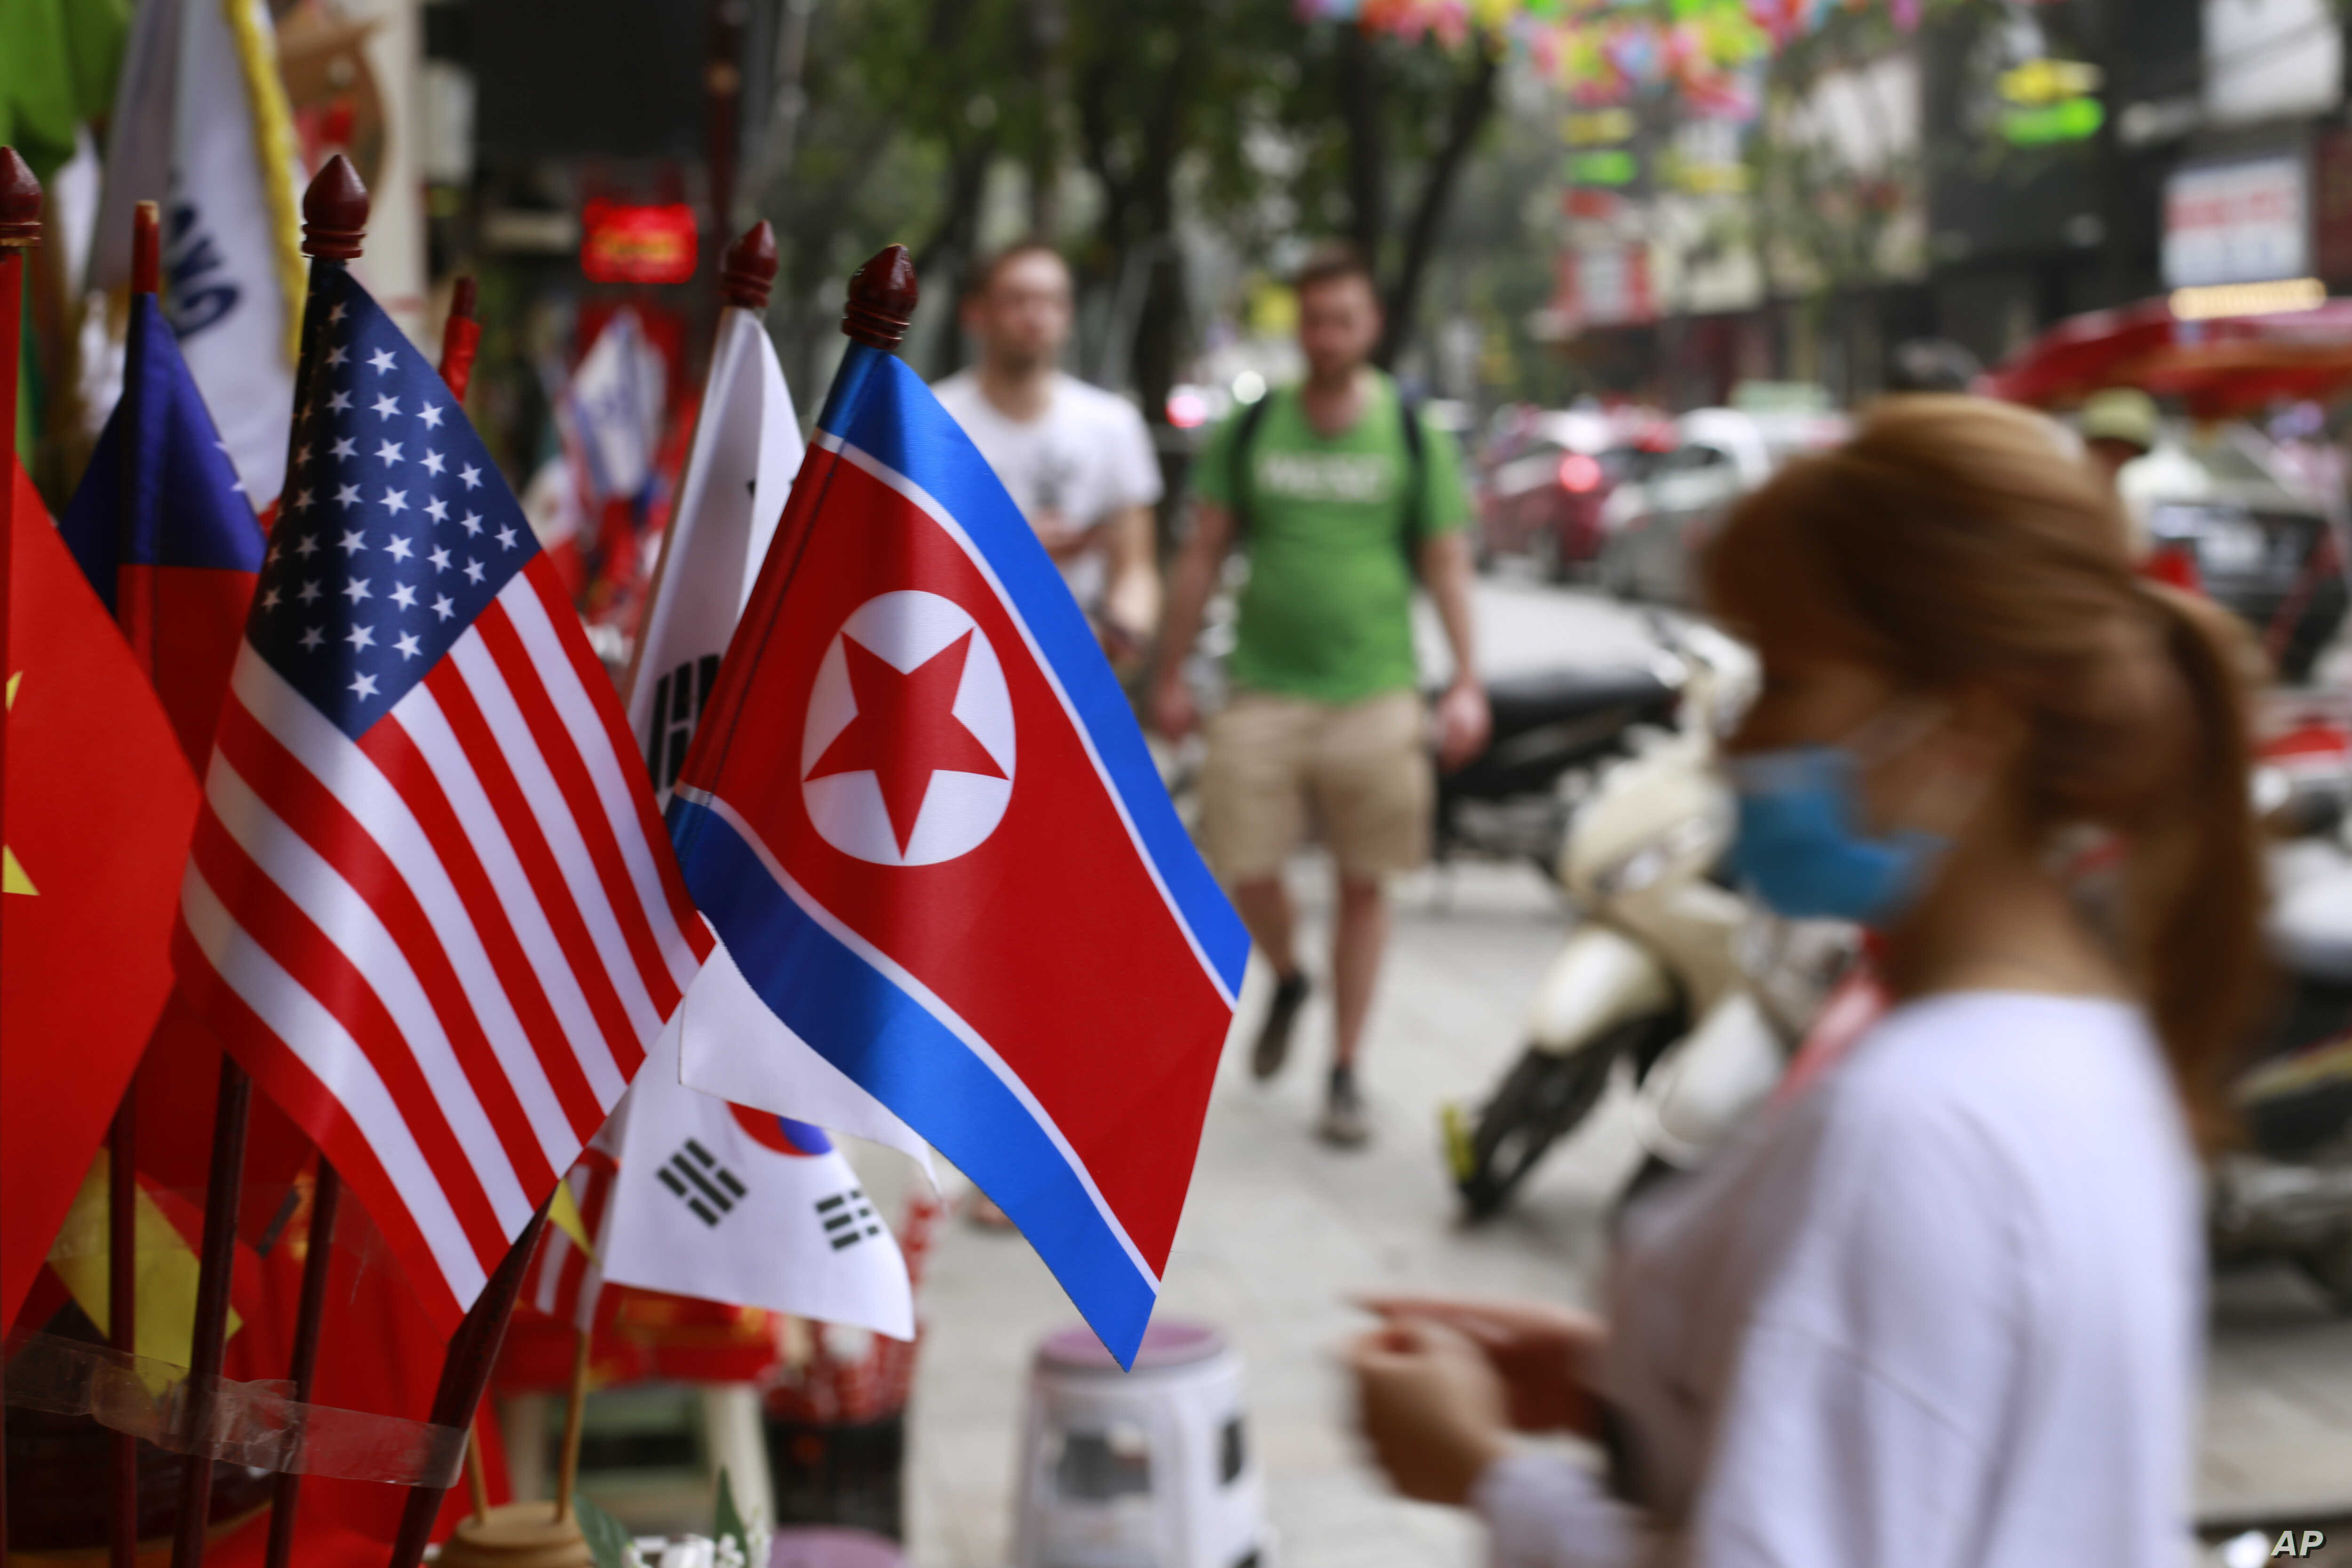 U.S and North Korean flags are on sale at a flag shop in Hanoi, Vietnam, Jan. 29, 2019. Vietnam's selection as the venue for the second summit between U.S. President Donald Trump and North Korean leader Kim Jong Un is largely a matter of convenience